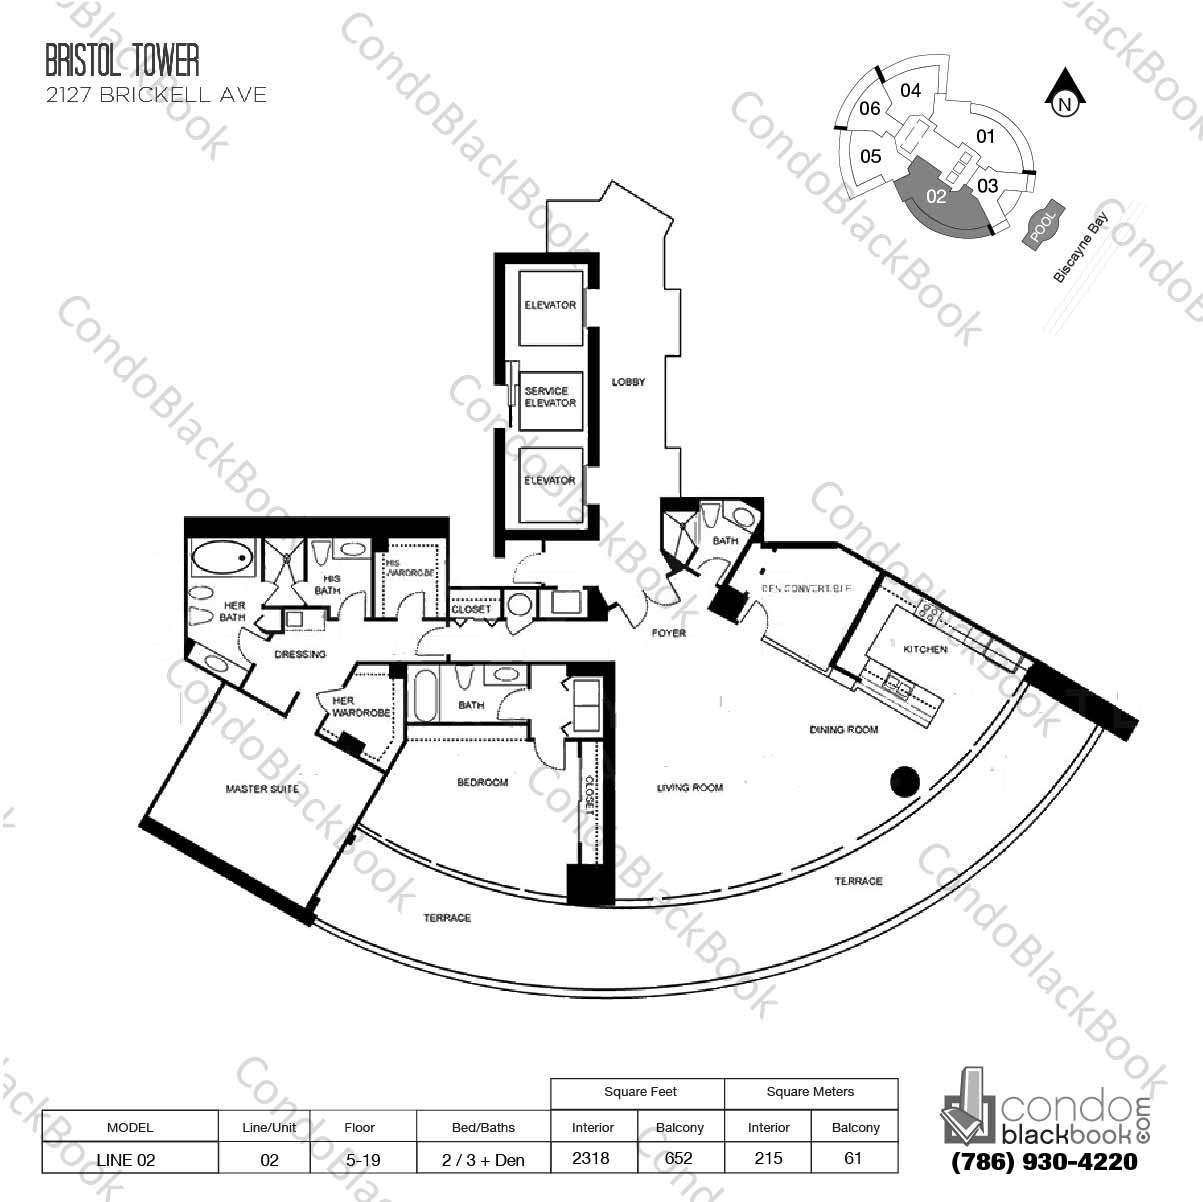 Floor plan for Bristol Tower Condominium Brickell Miami, model Line 02, line 02, 2 / 3 + Den bedrooms, 2318 sq ft